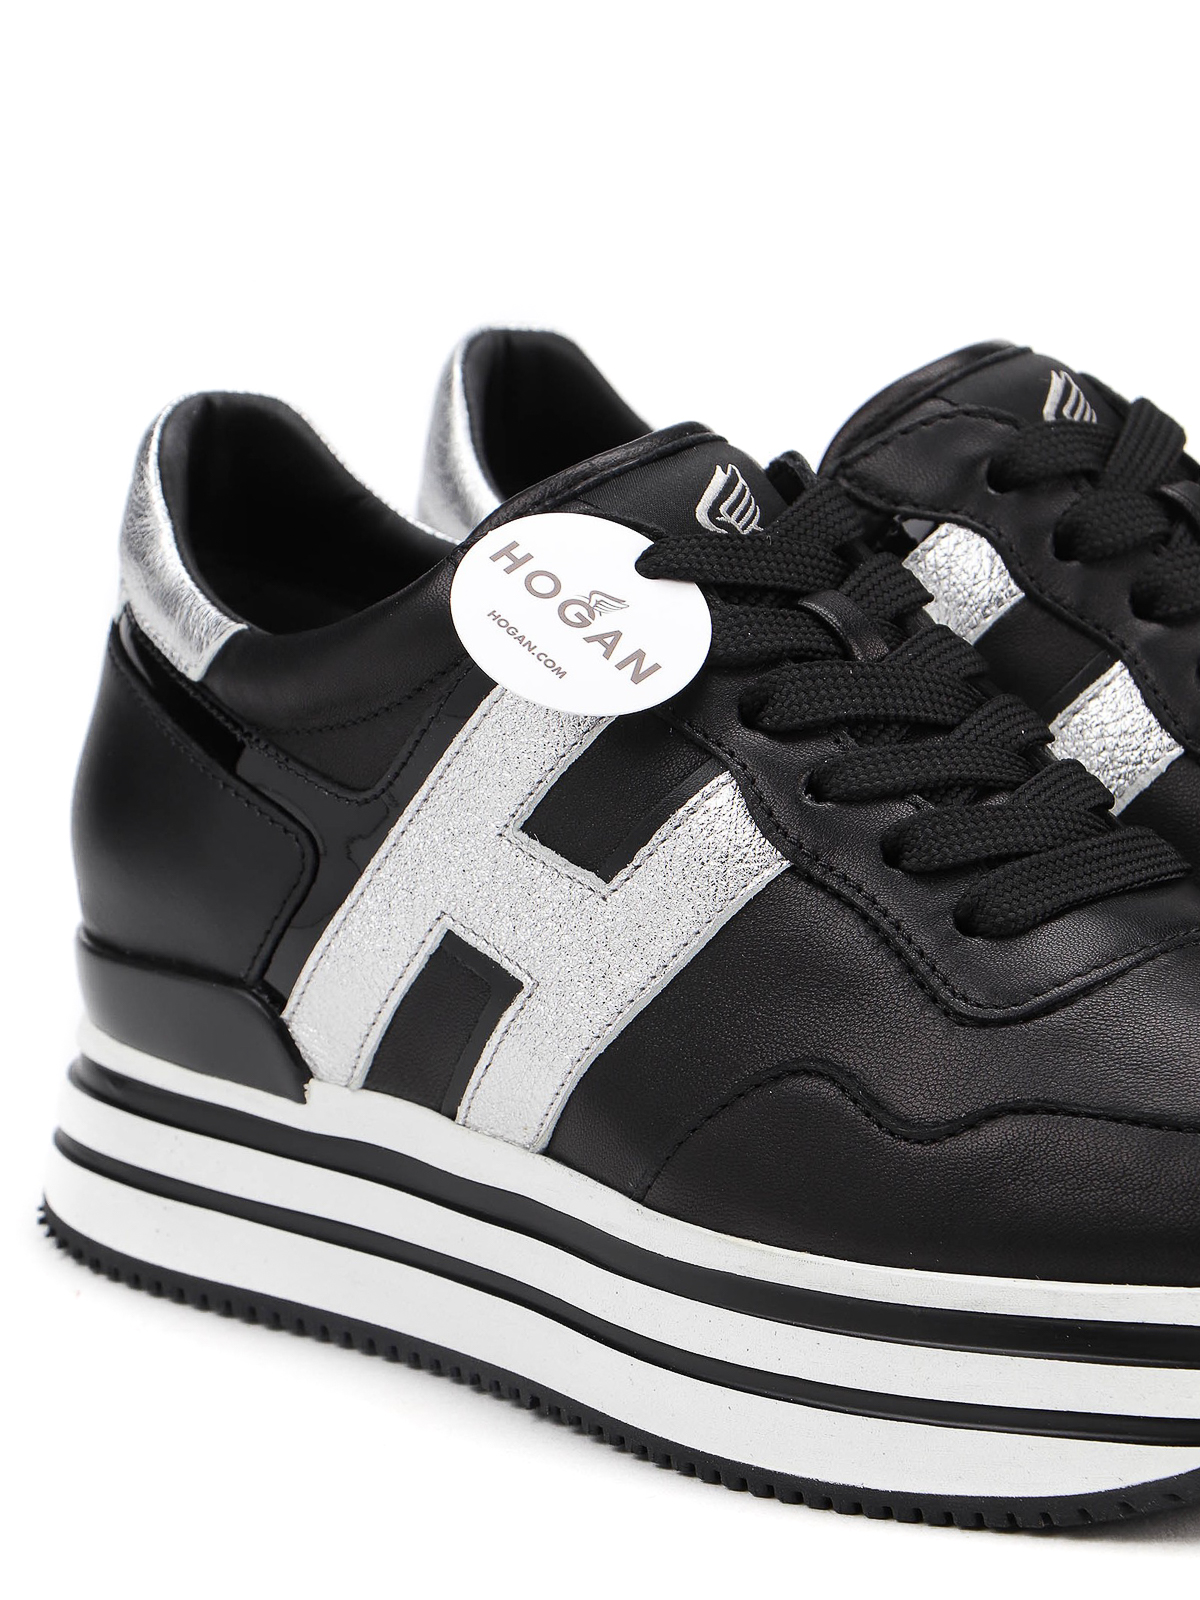 Trainers Hogan - Midi H222 sneakers with laminated inserts ...